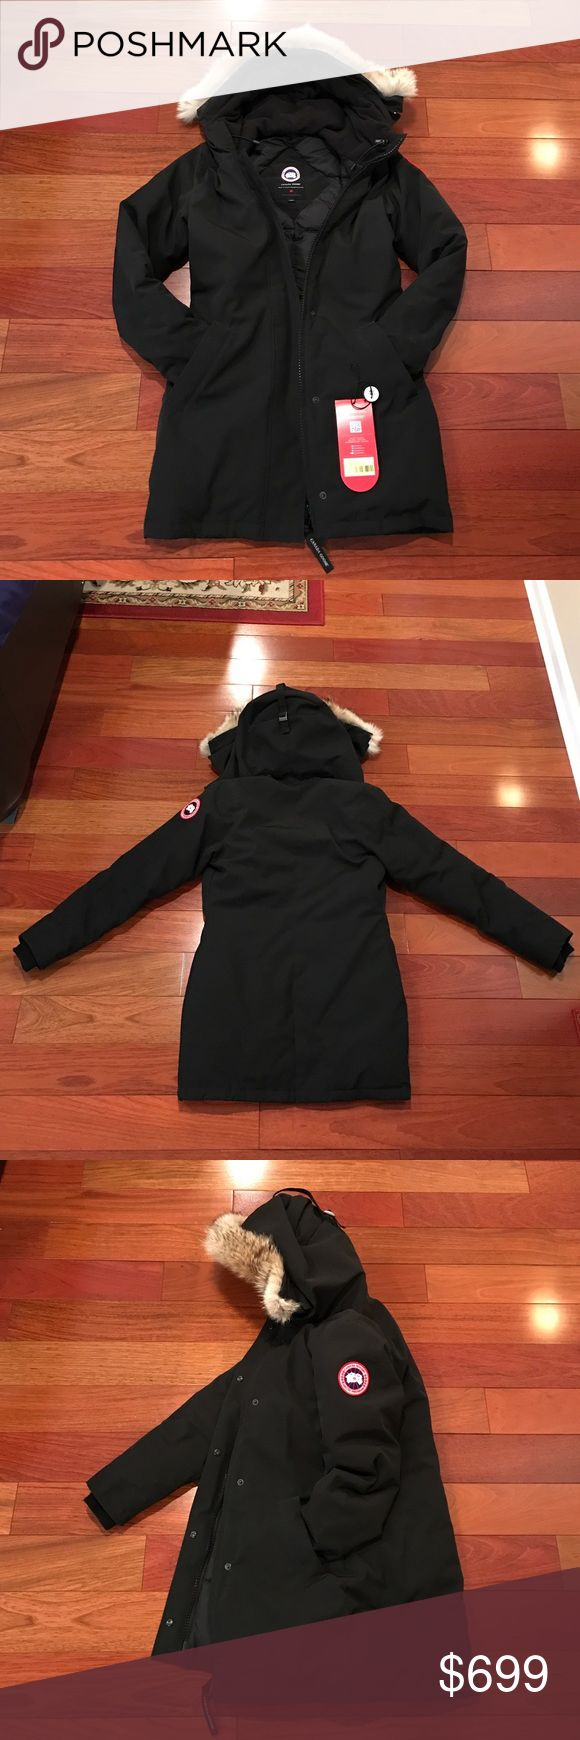 Authentic Canada Goose Victoria Parka Black XS Pre-owned, 100% Authentic Canada Goose Women's Victoria Parka in Black, Size XS.  Good condition. Worn for one winter season. Signs of wear on cuff area. Comes with detached tags.  Please view all photos and ask any questions prior to purchasing, thanks! Canada Goose Jackets & Coats